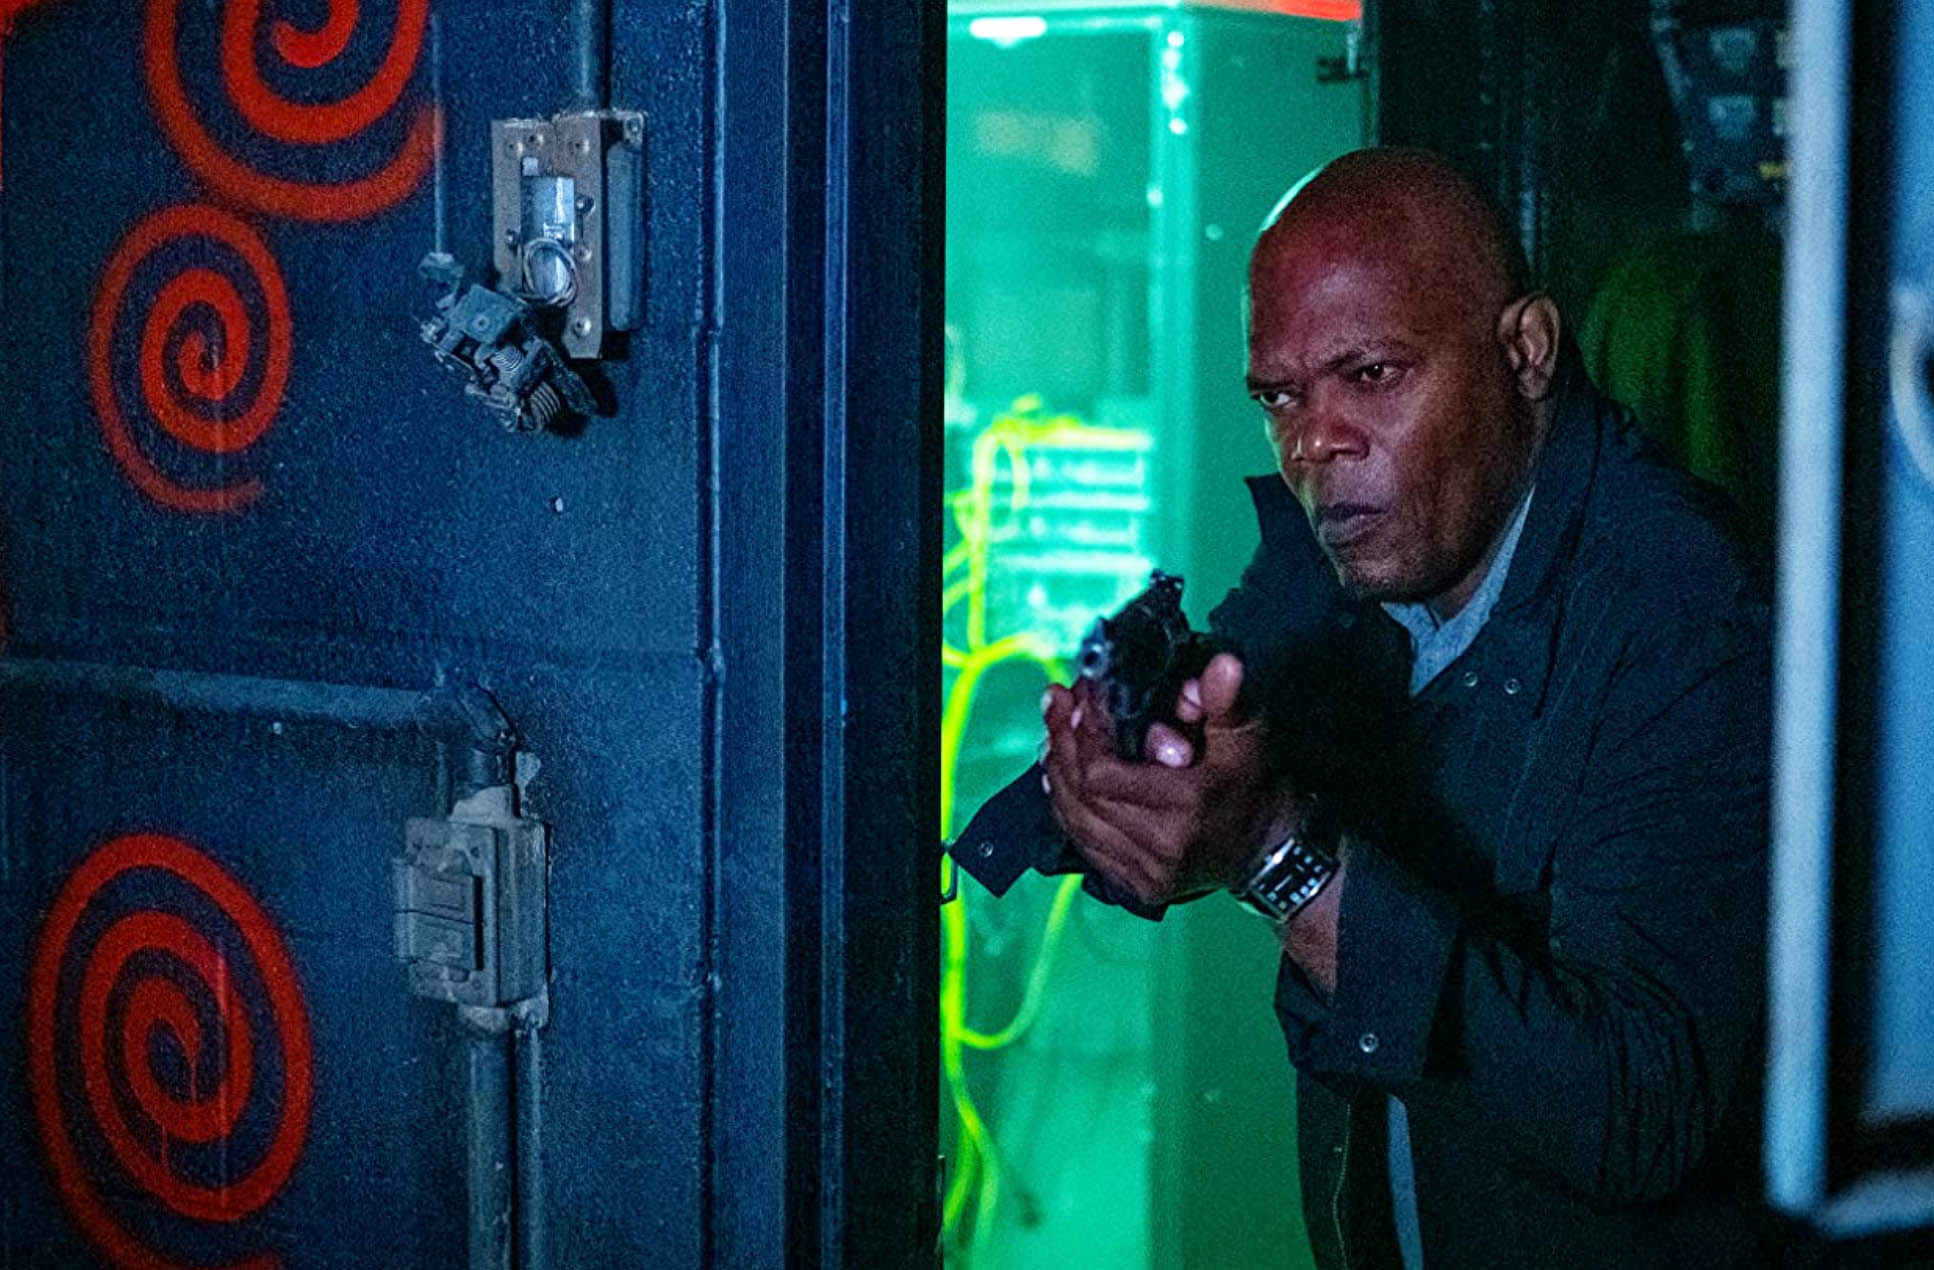 Spiral: From the Book of Saw med Samuel L. Jackson som politi-O.G. Marcus Banks (Lionsgate)